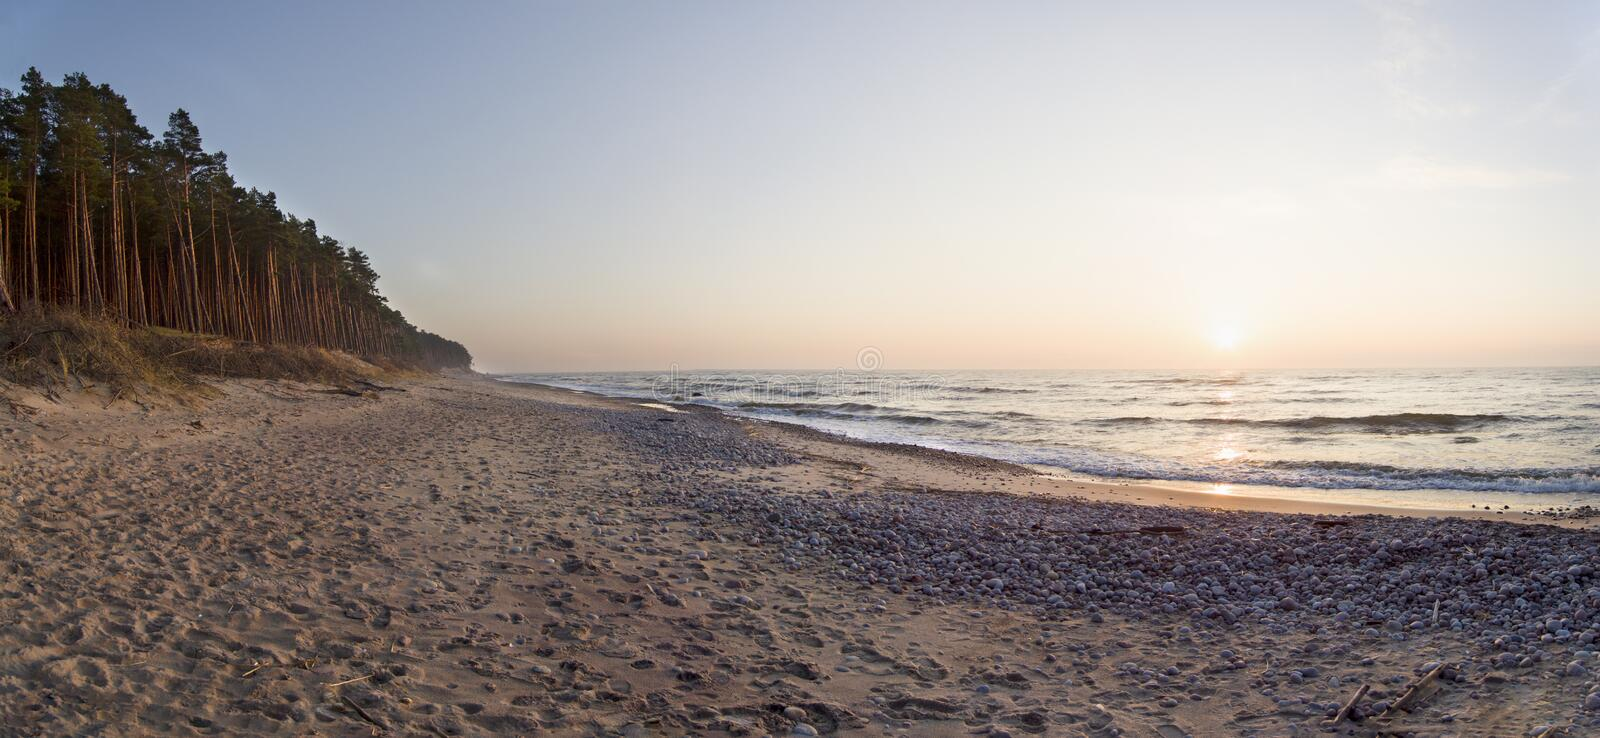 Panoramic view Beautiful sunset on the sandy beach of the Baltic Sea in Lithuania, Klaipeda royalty free stock photos